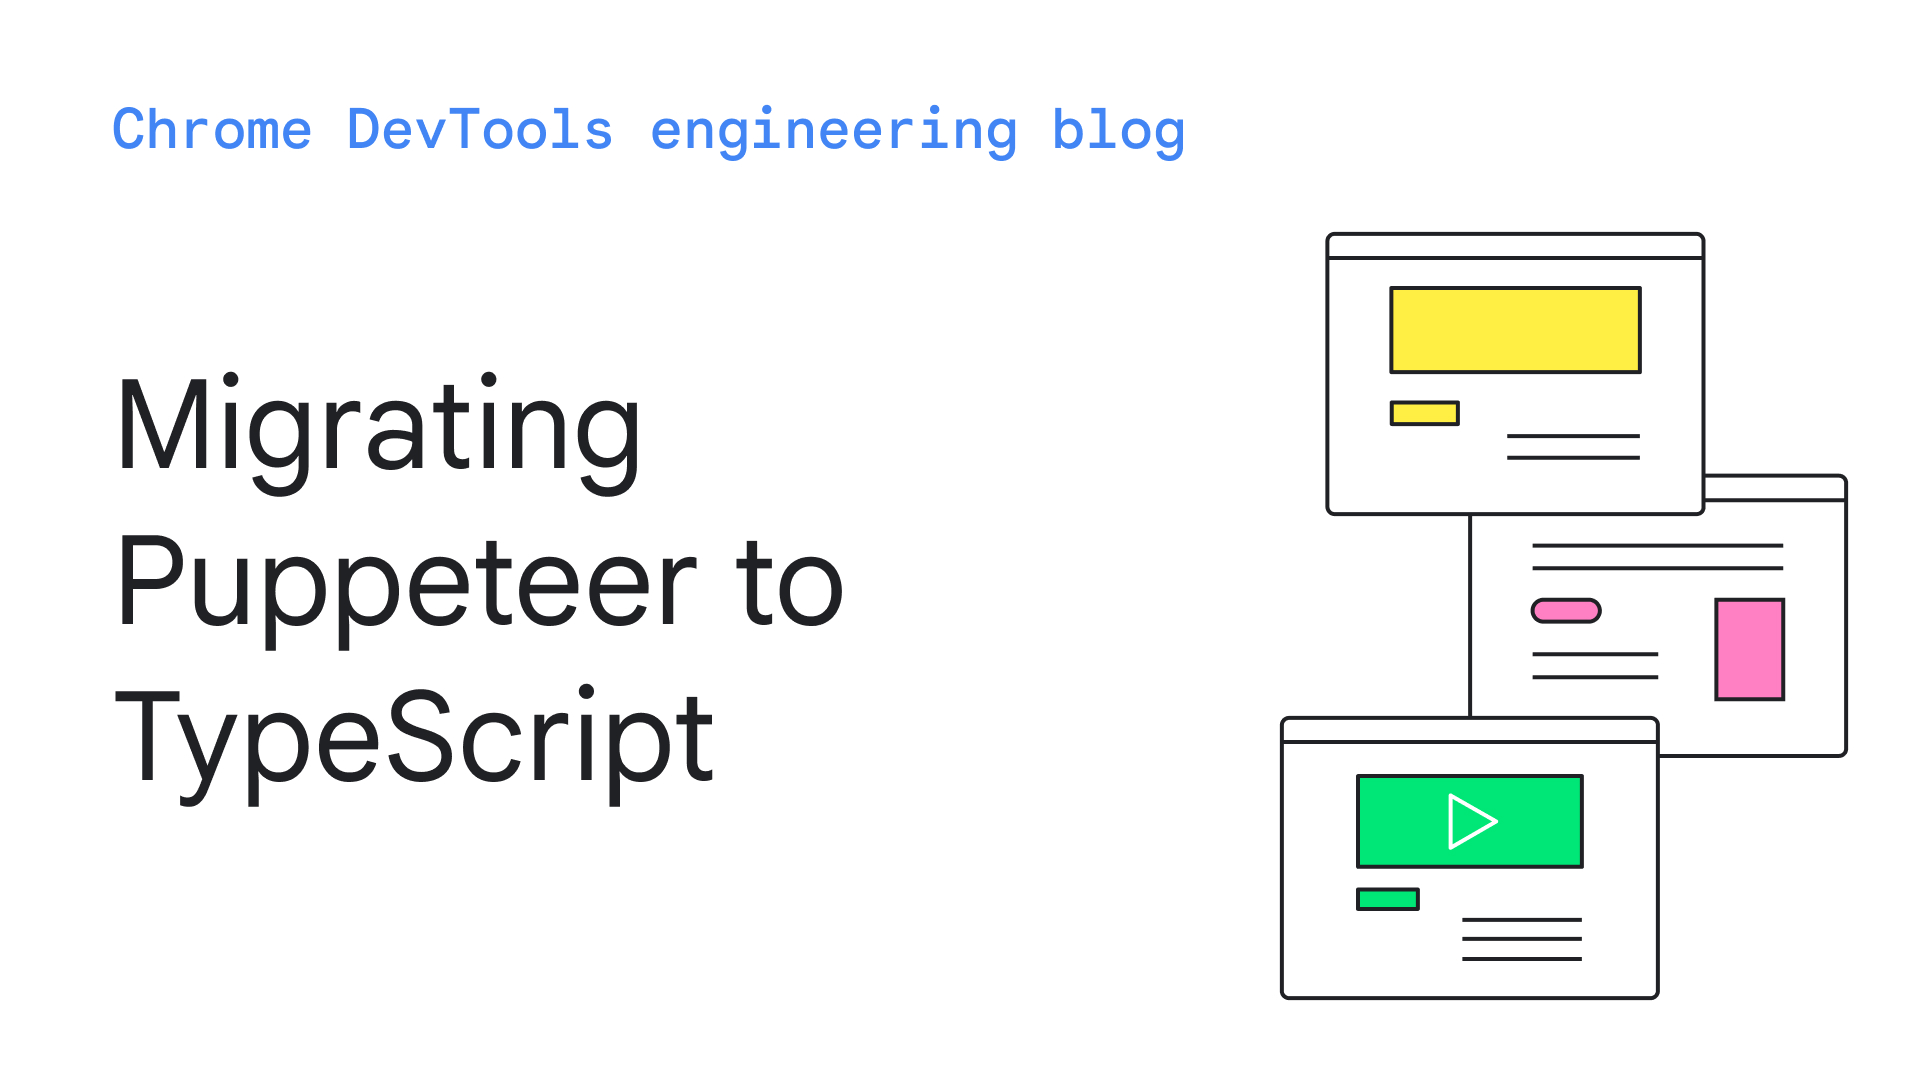 Migrating Puppeteer to TypeScript